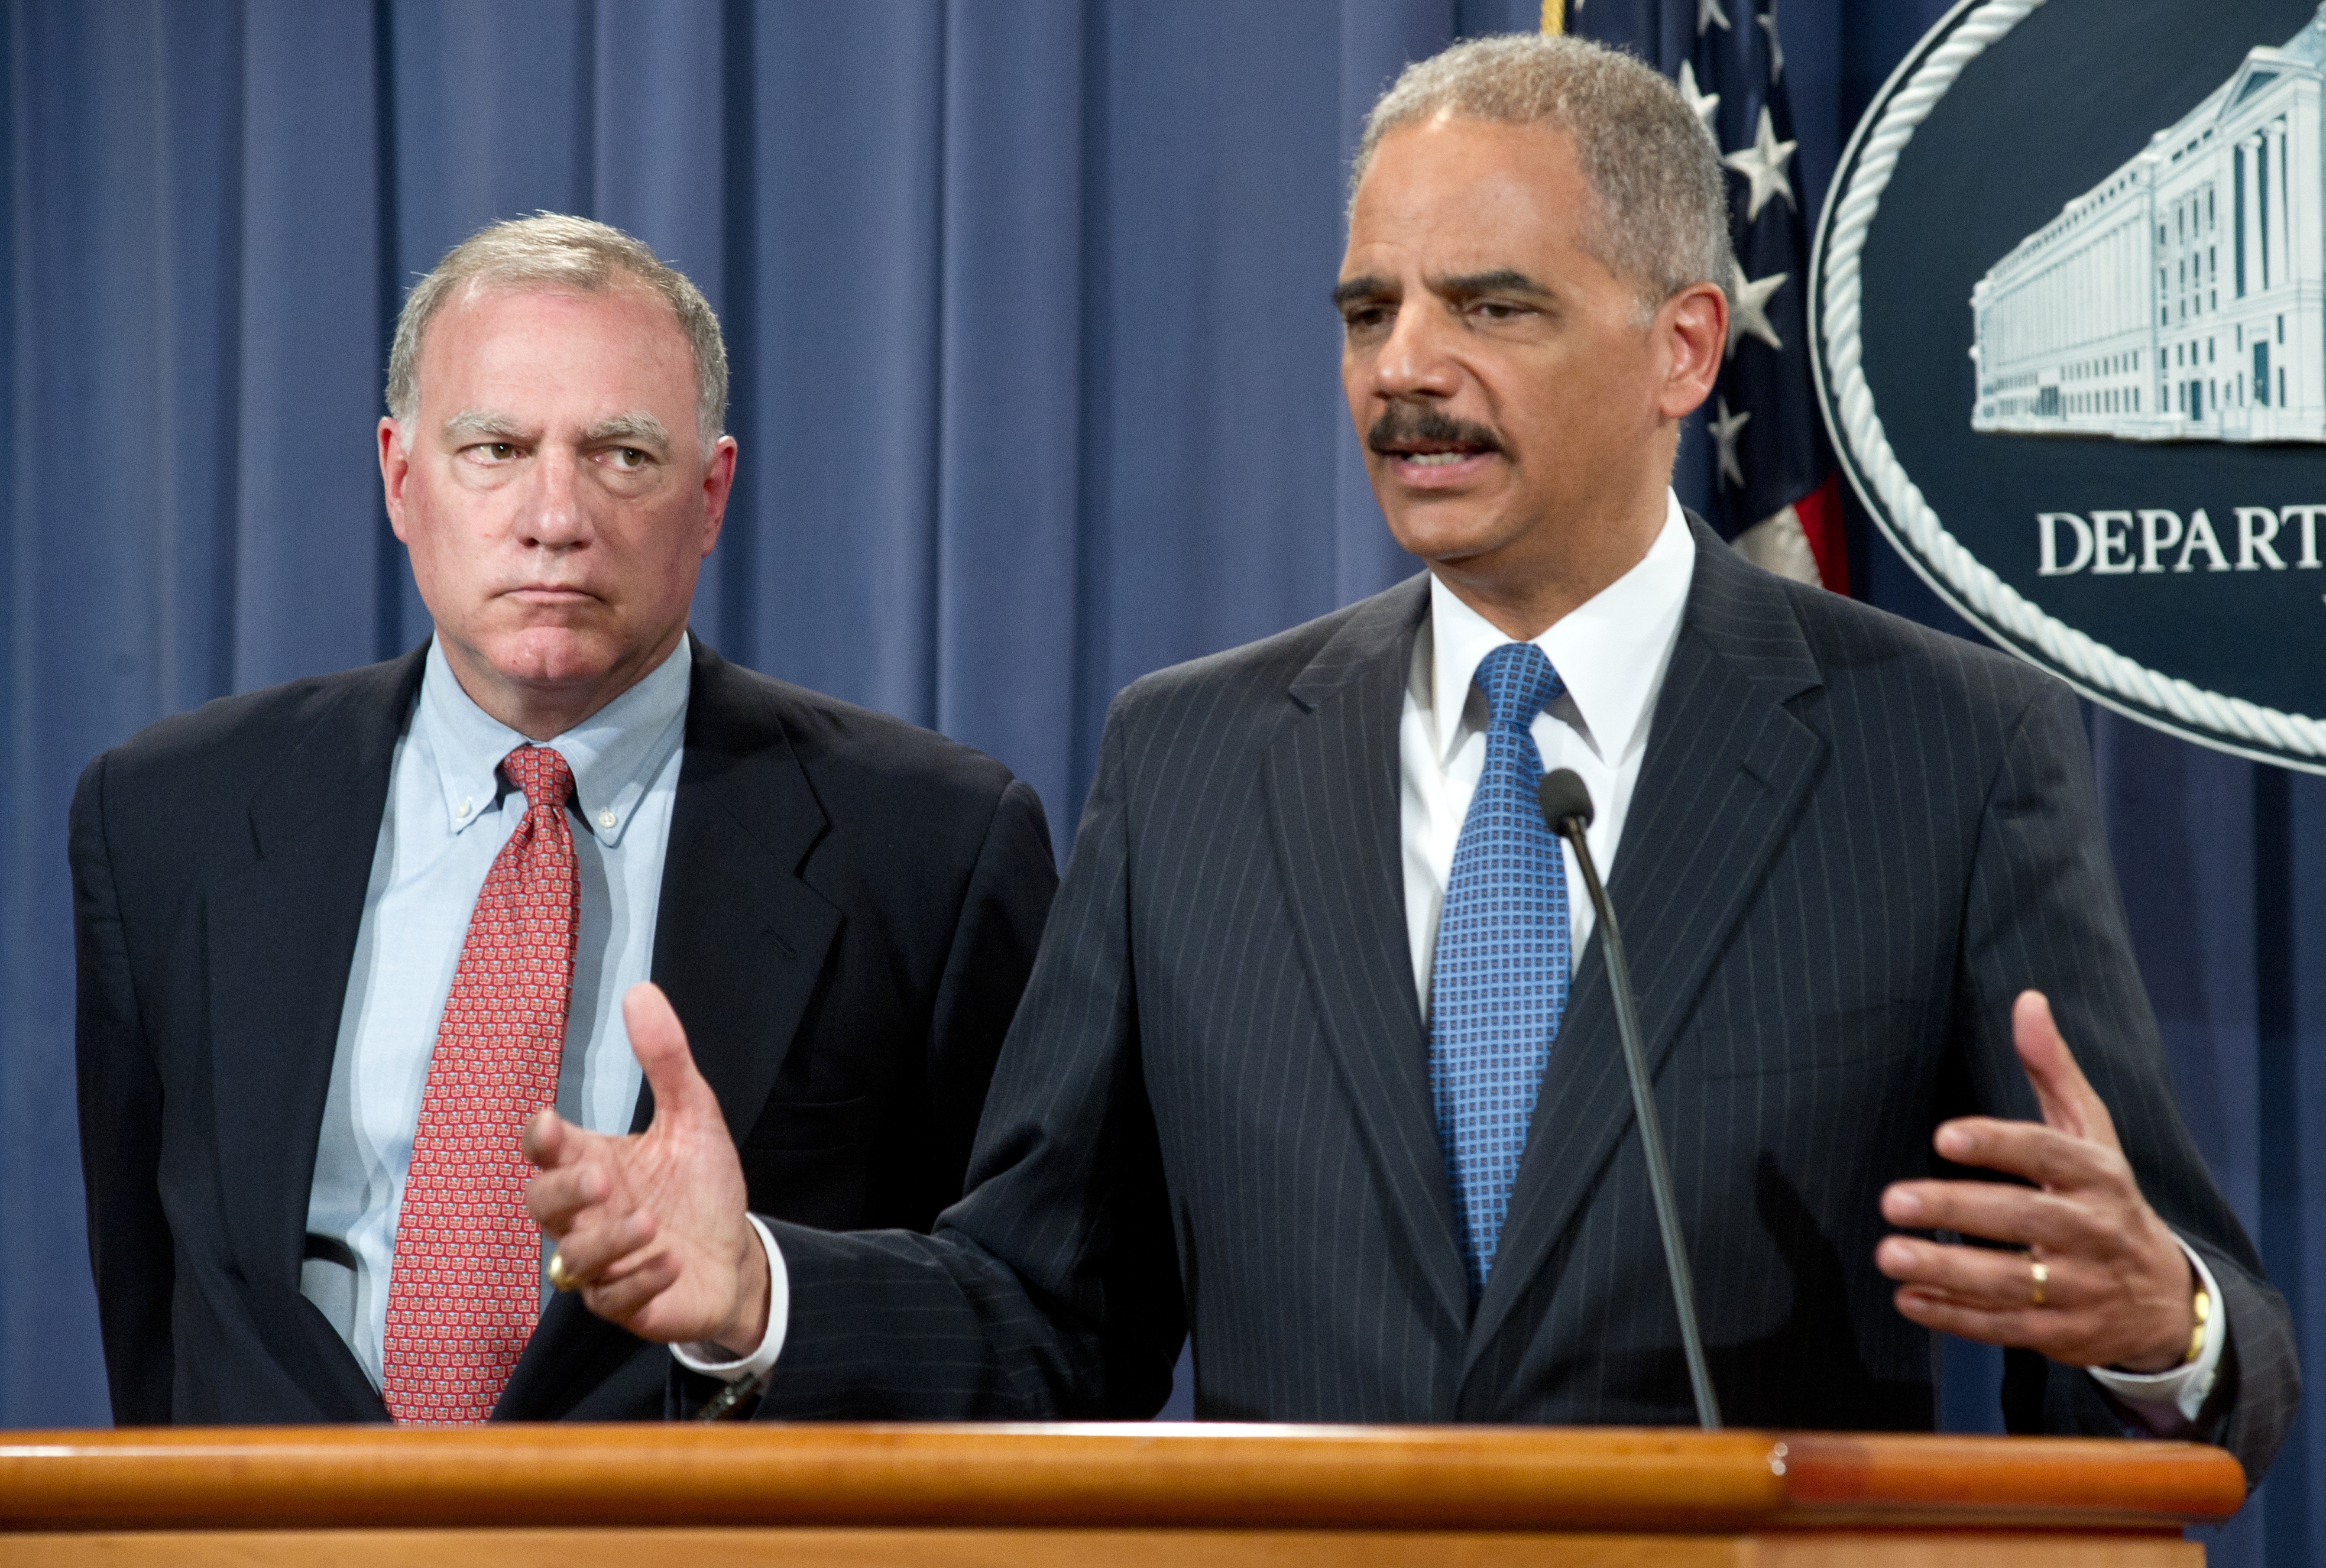 U.S. Attorney General Eric Holder with Connecticut Attorney General George Jepsen announcing a complaint against Apple and settlements with publishers, at a 2012 press conference.